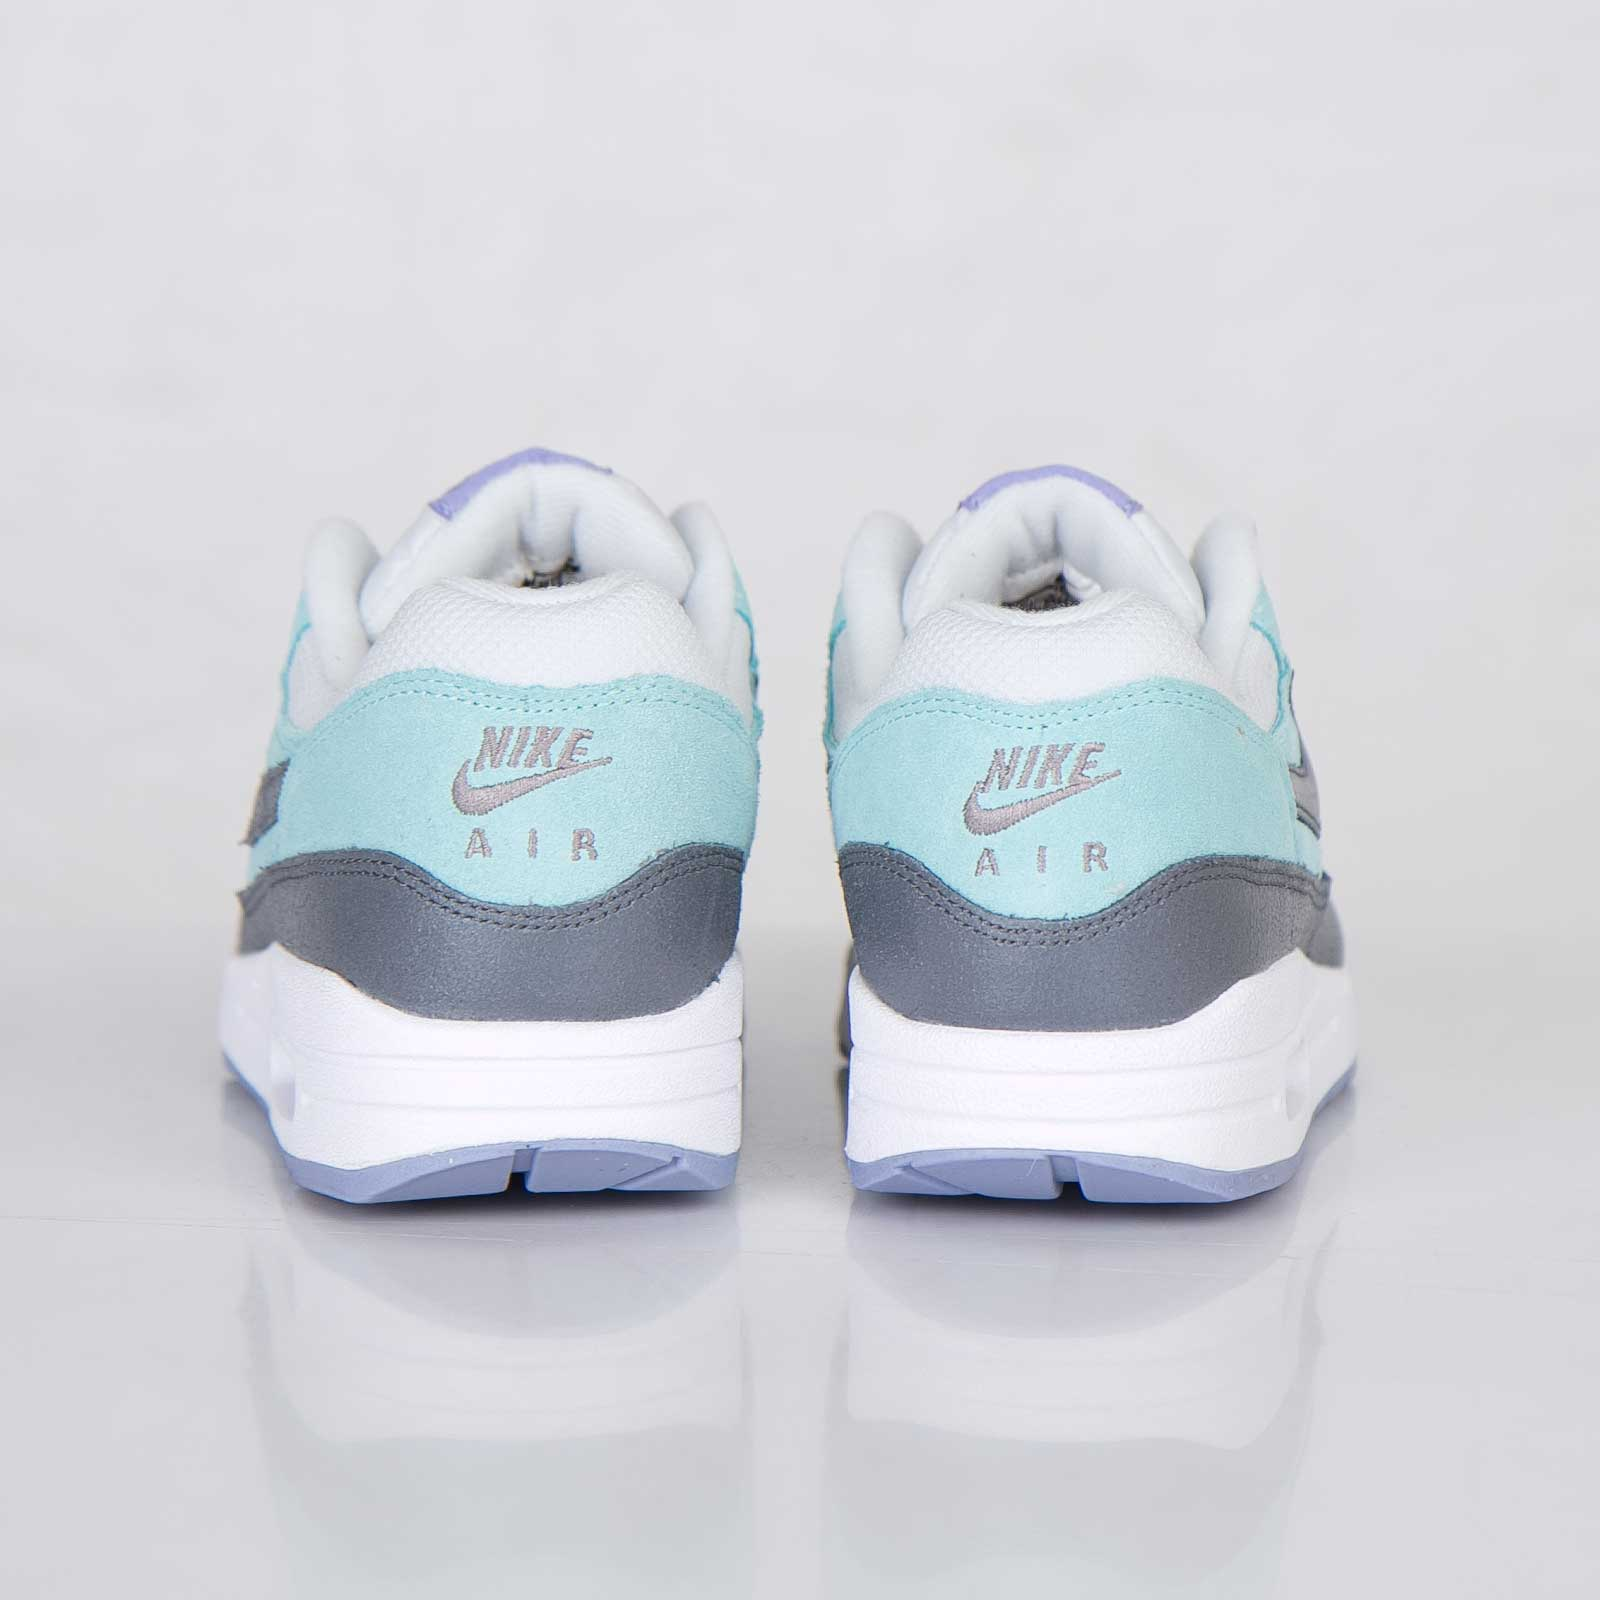 Nike Wmns Air Max 1 Essential 599820 004 Sneakersnstuff